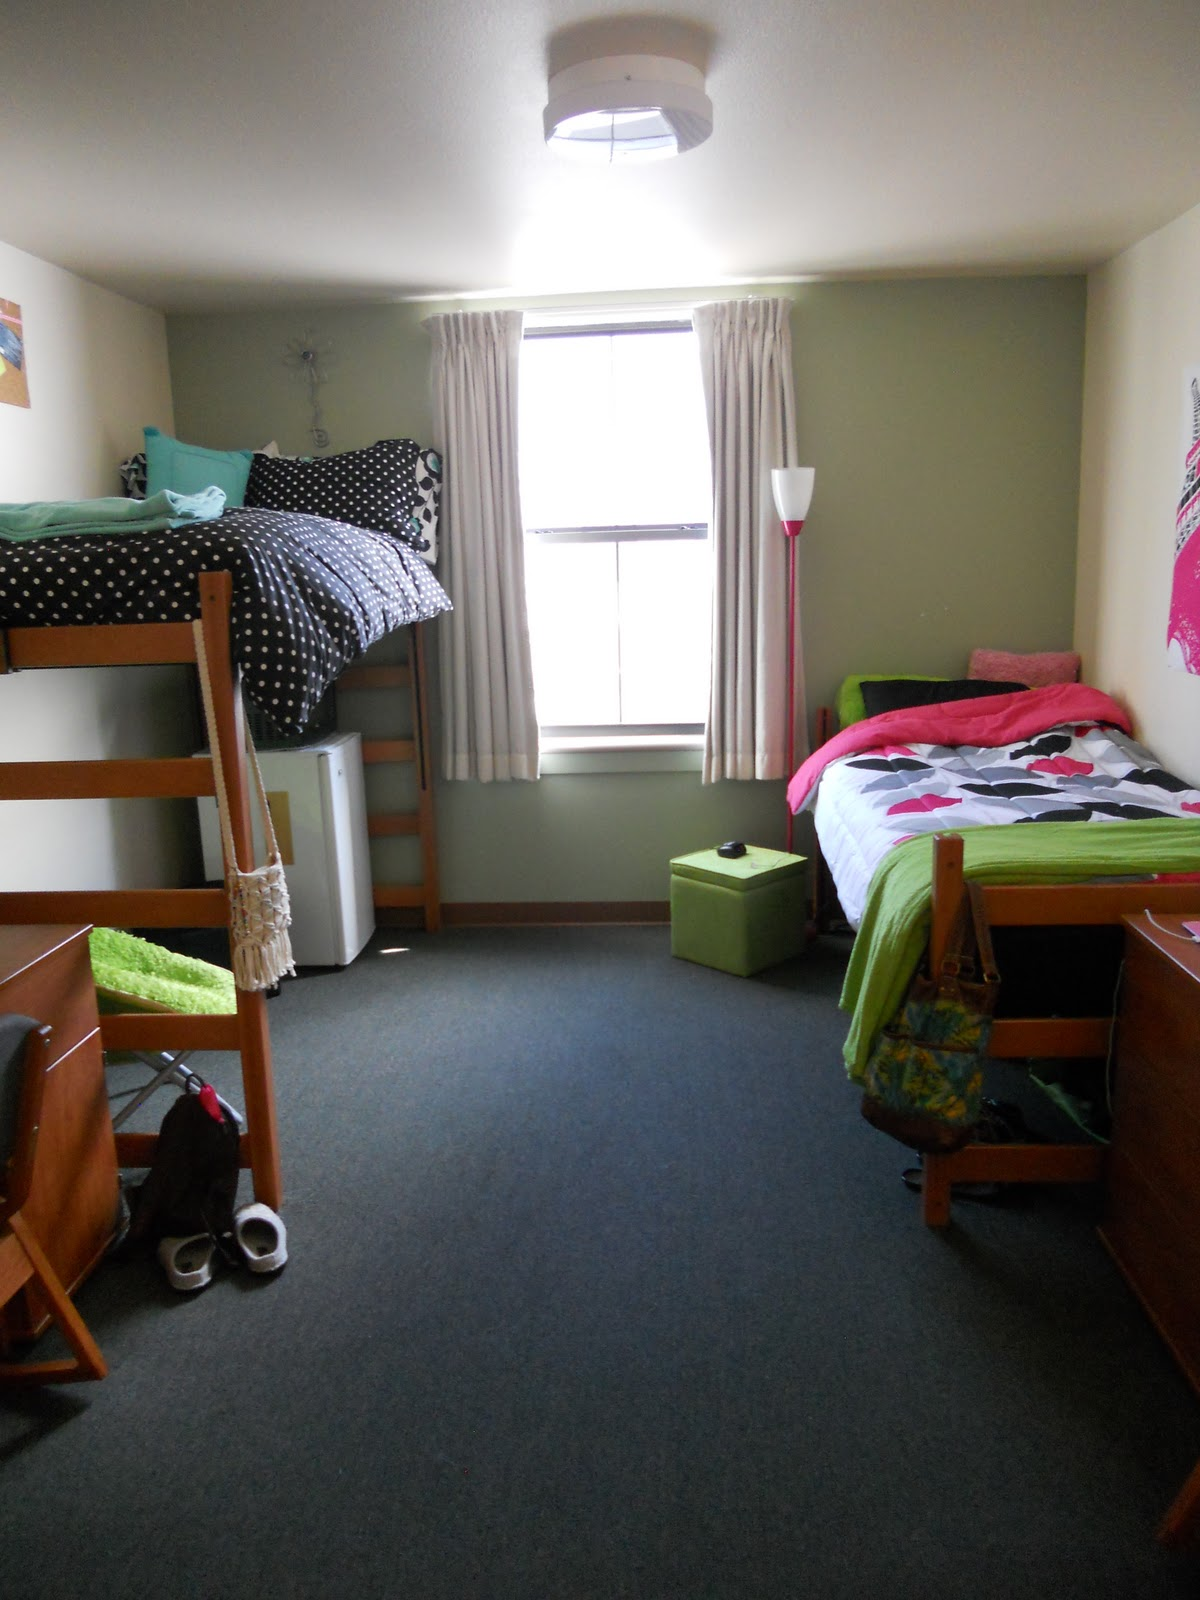 Dorm Life At Csu Maximizing The Space In The Rooms